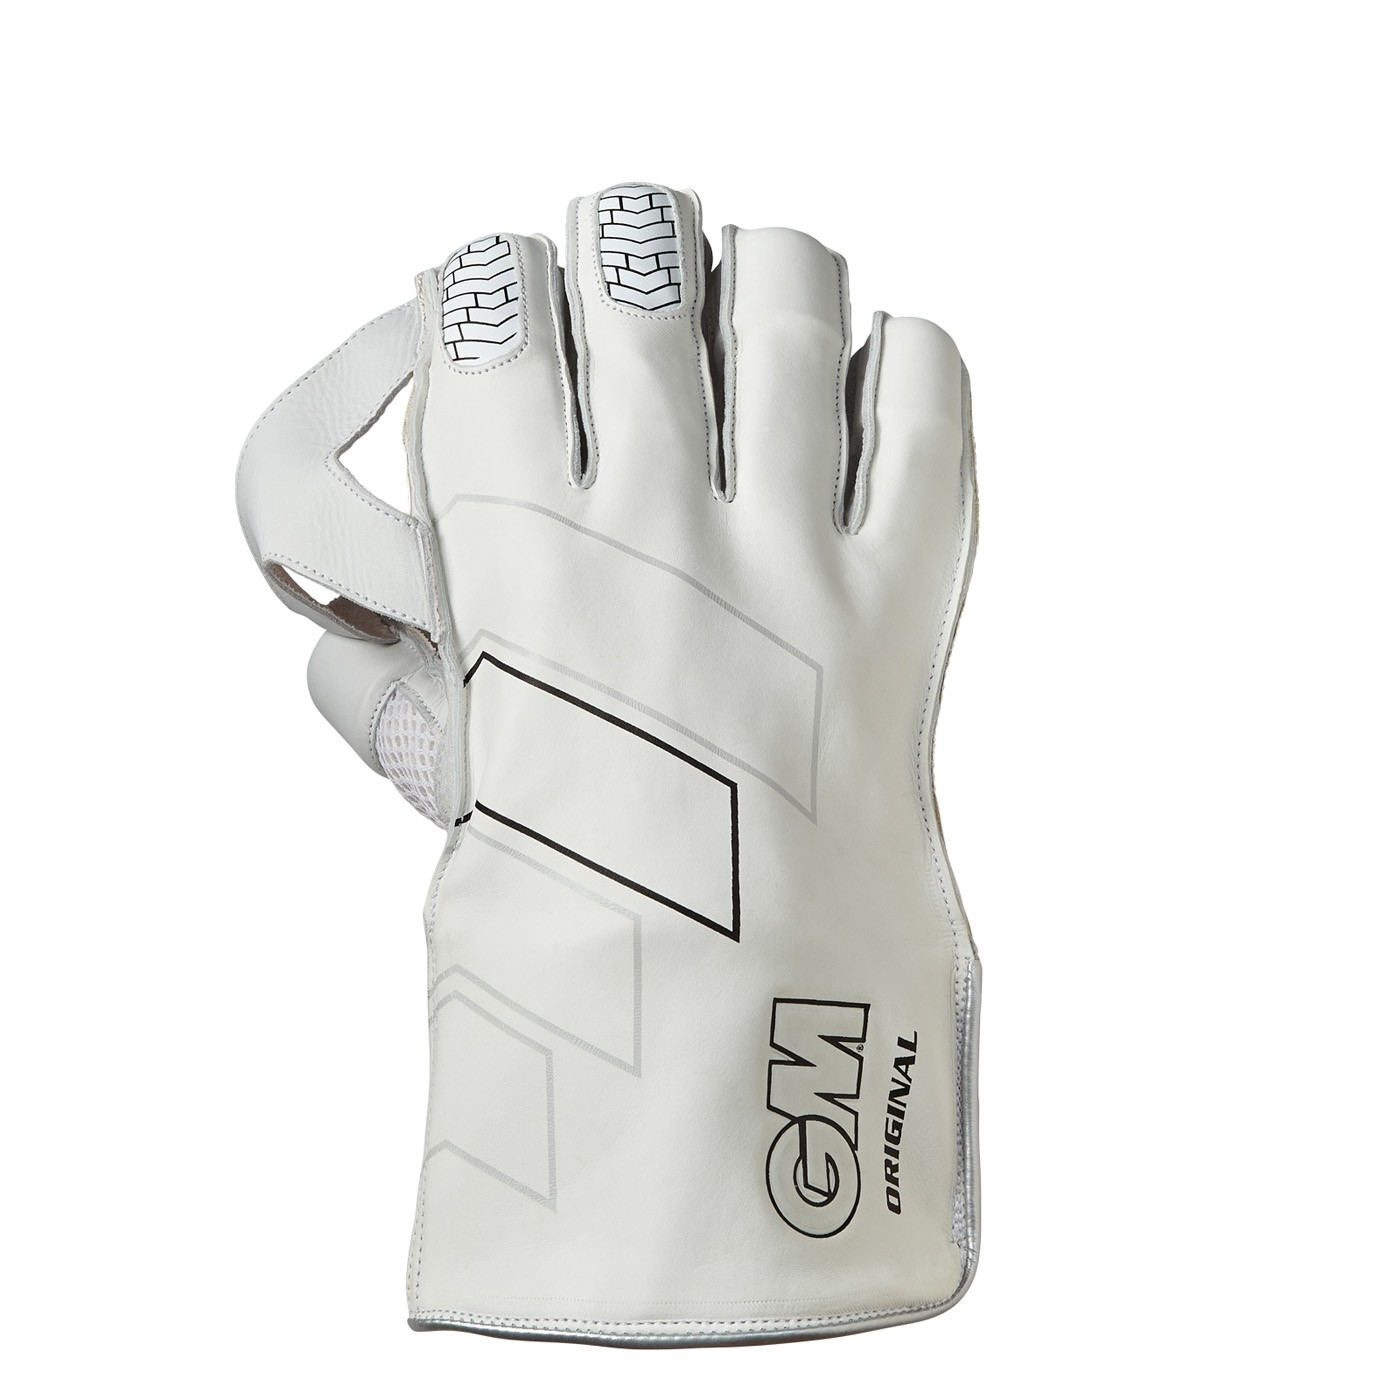 2020 Gunn and Moore Original Wicket Keeping Gloves